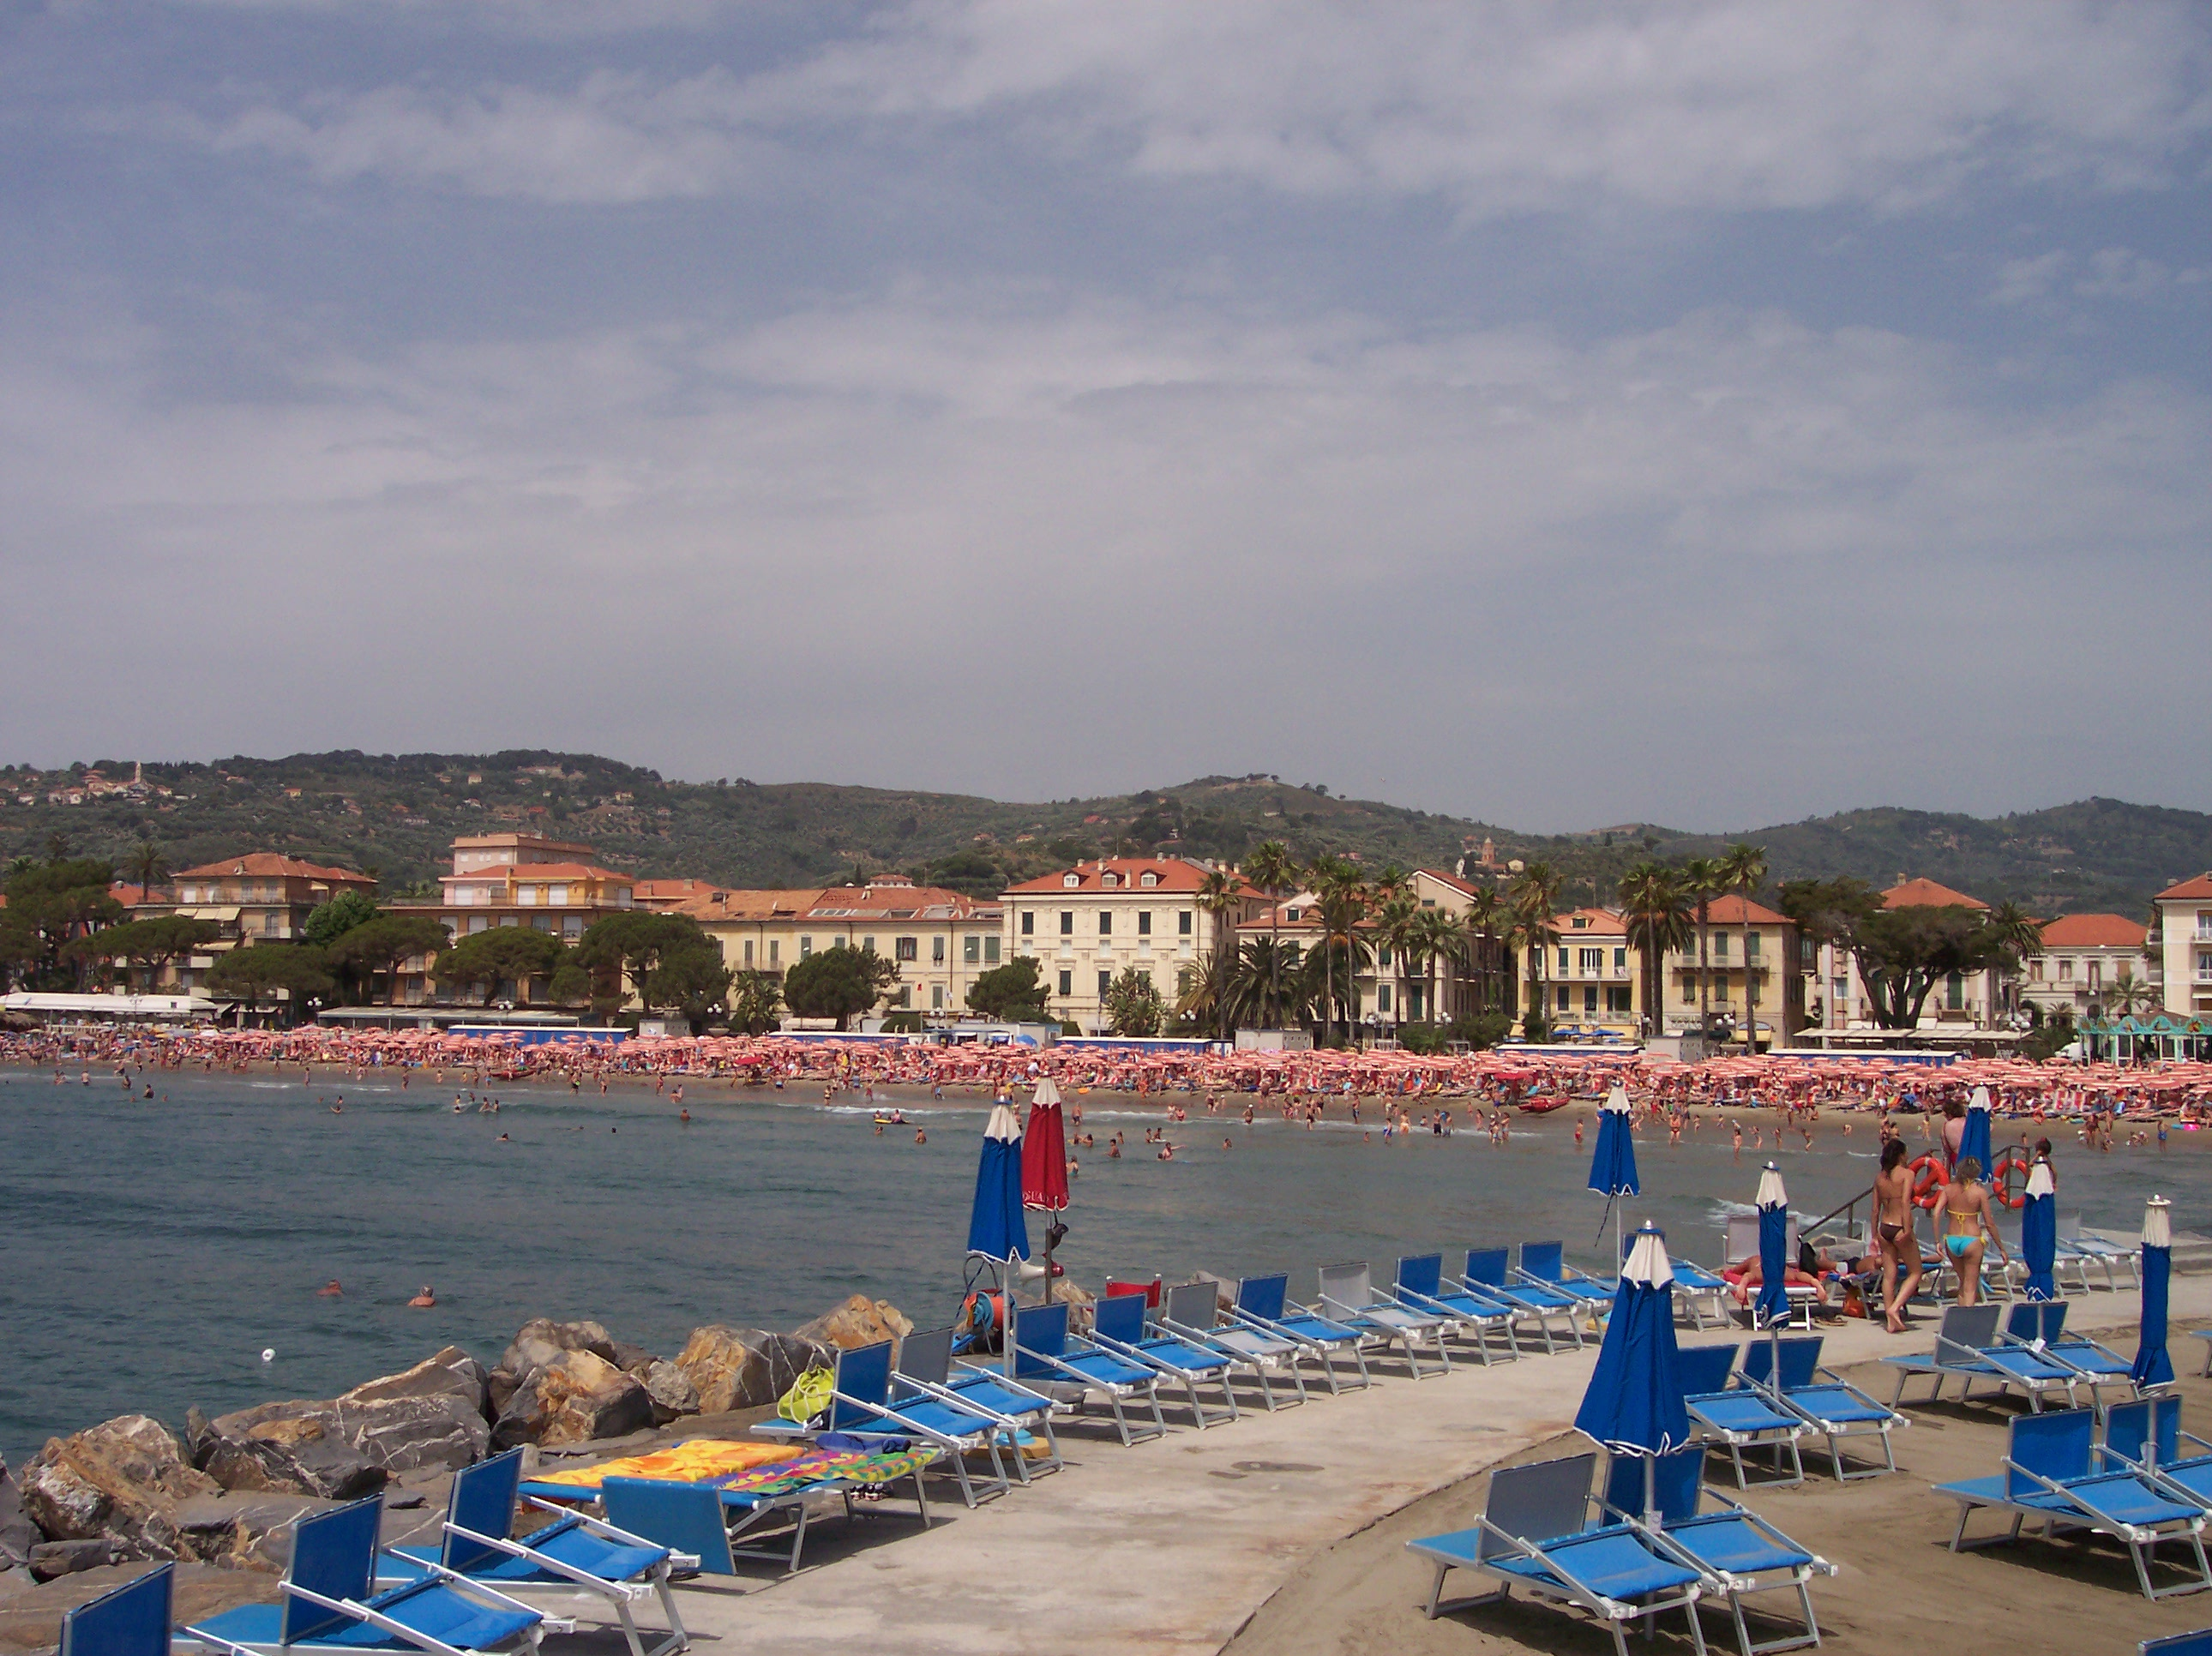 https://upload.wikimedia.org/wikipedia/commons/b/b4/Diano-marina-italy.jpg